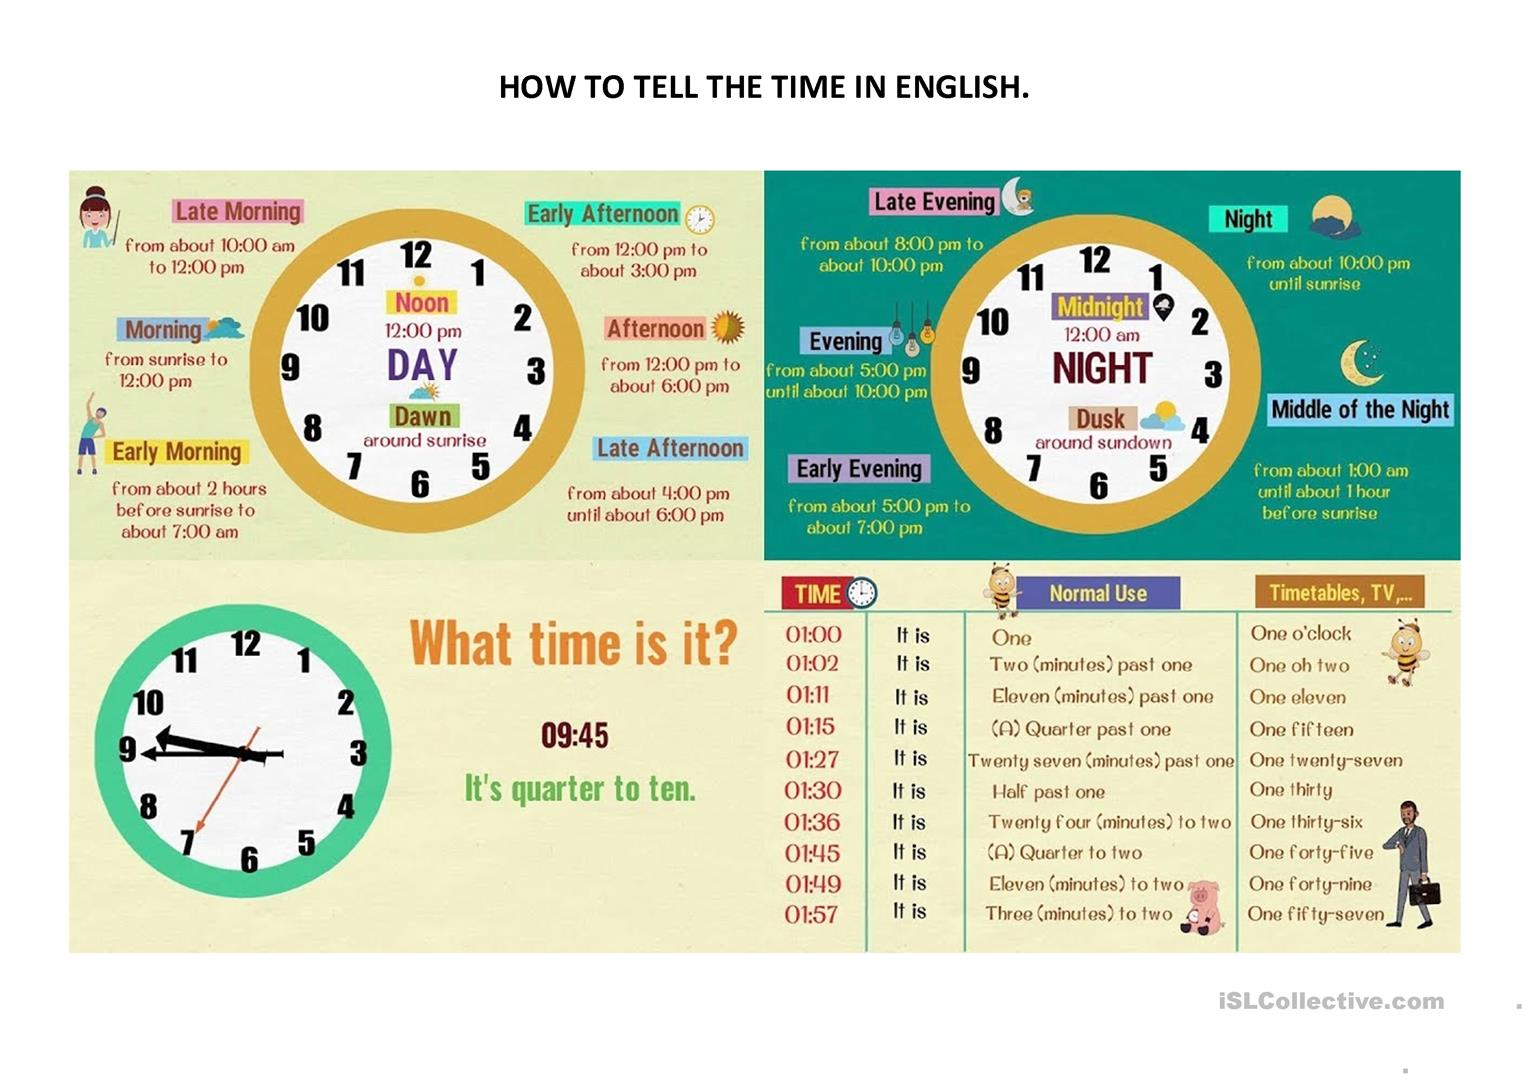 How To Tell The Time In English